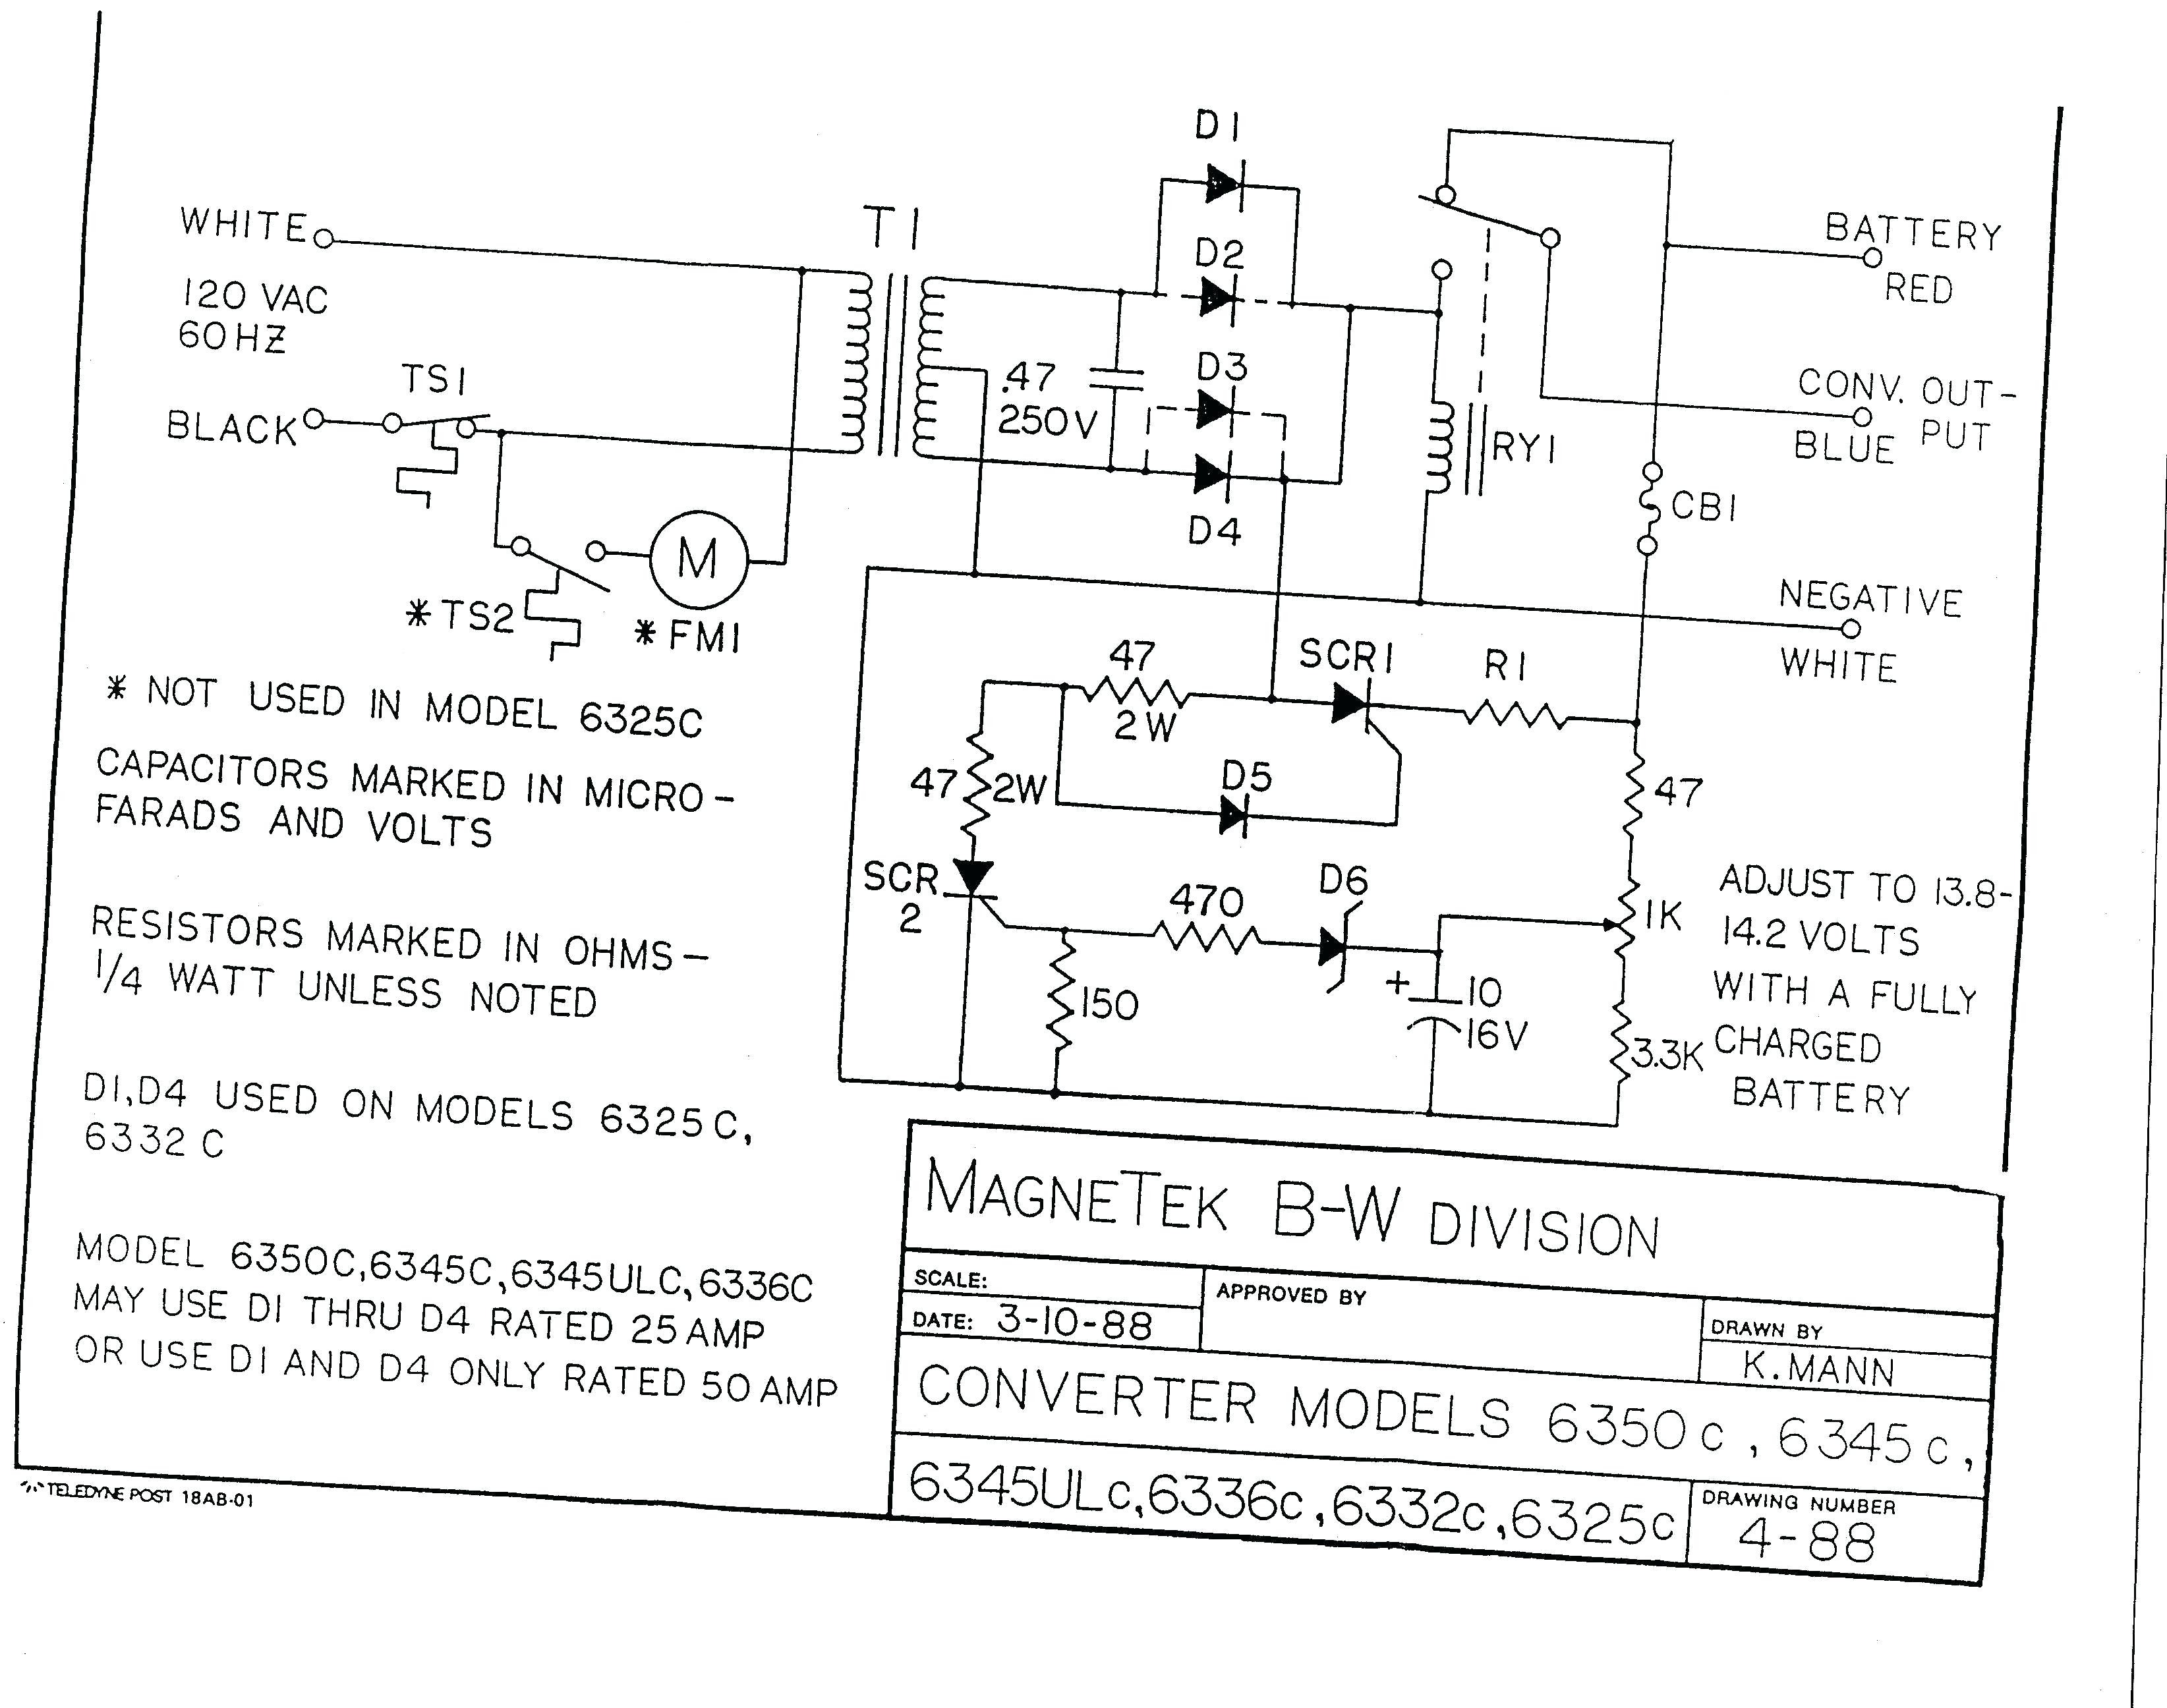 2 Pin Flasher Relay Wiring Diagram Beautiful Relay Pin Details S Everything You Need to Know Of 2 Pin Flasher Relay Wiring Diagram